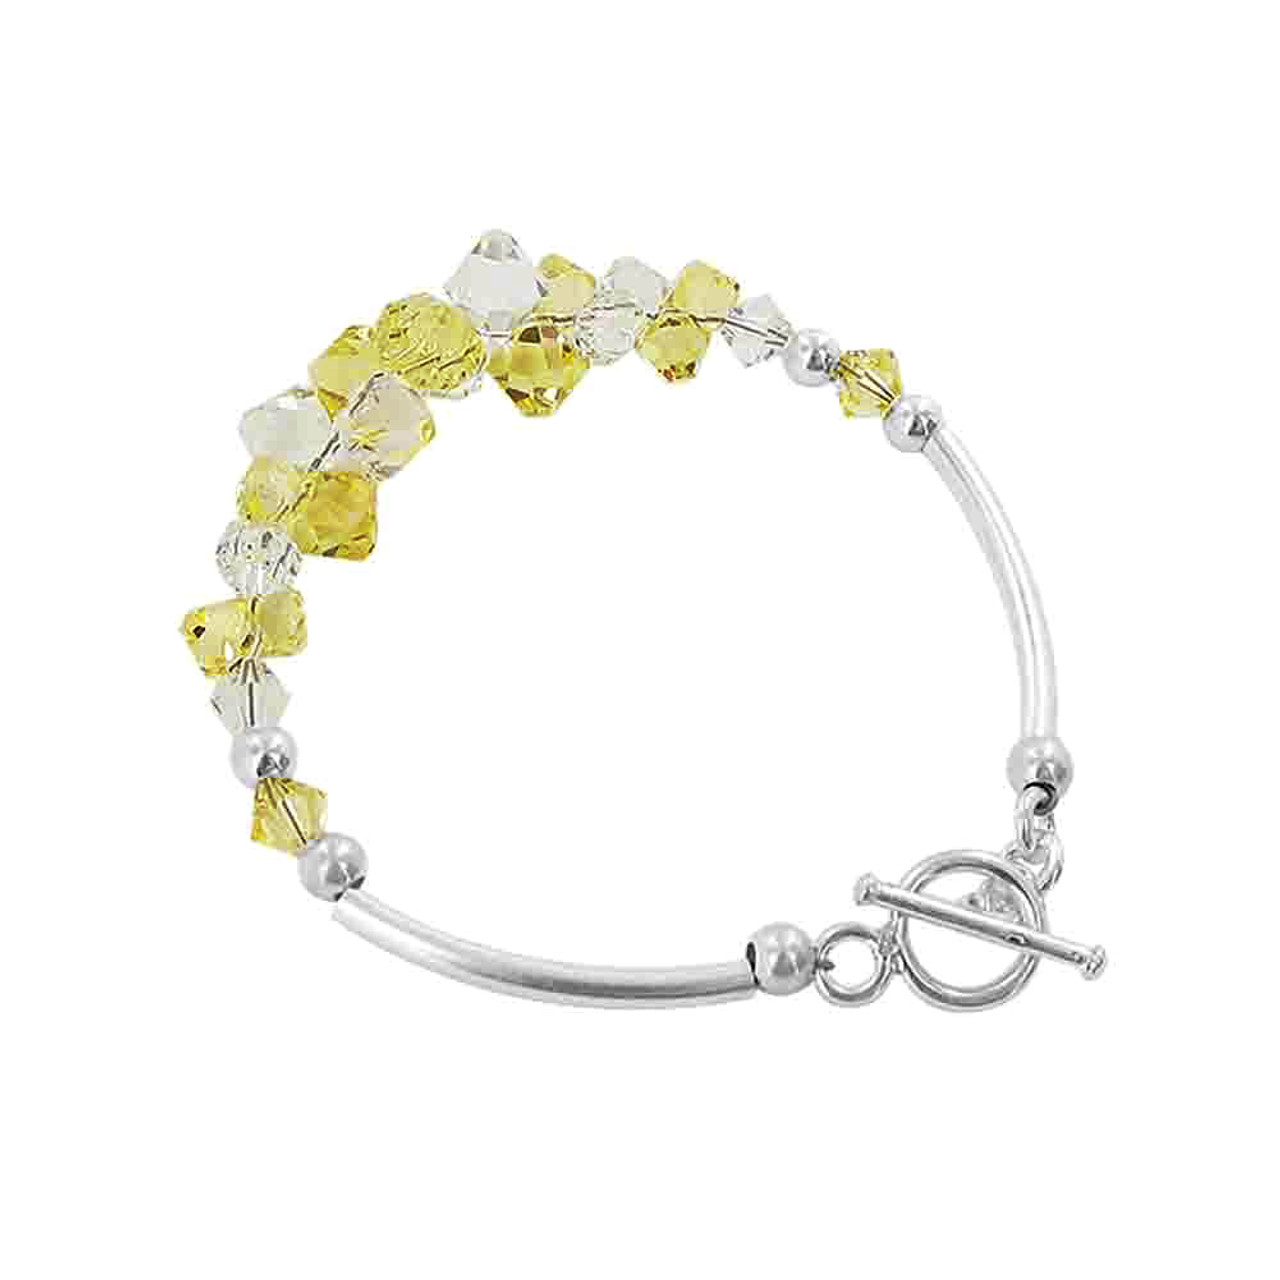 Cluster Style Swarovski Elements Yellow and Clear Crystal 7.5 inch Bracelet